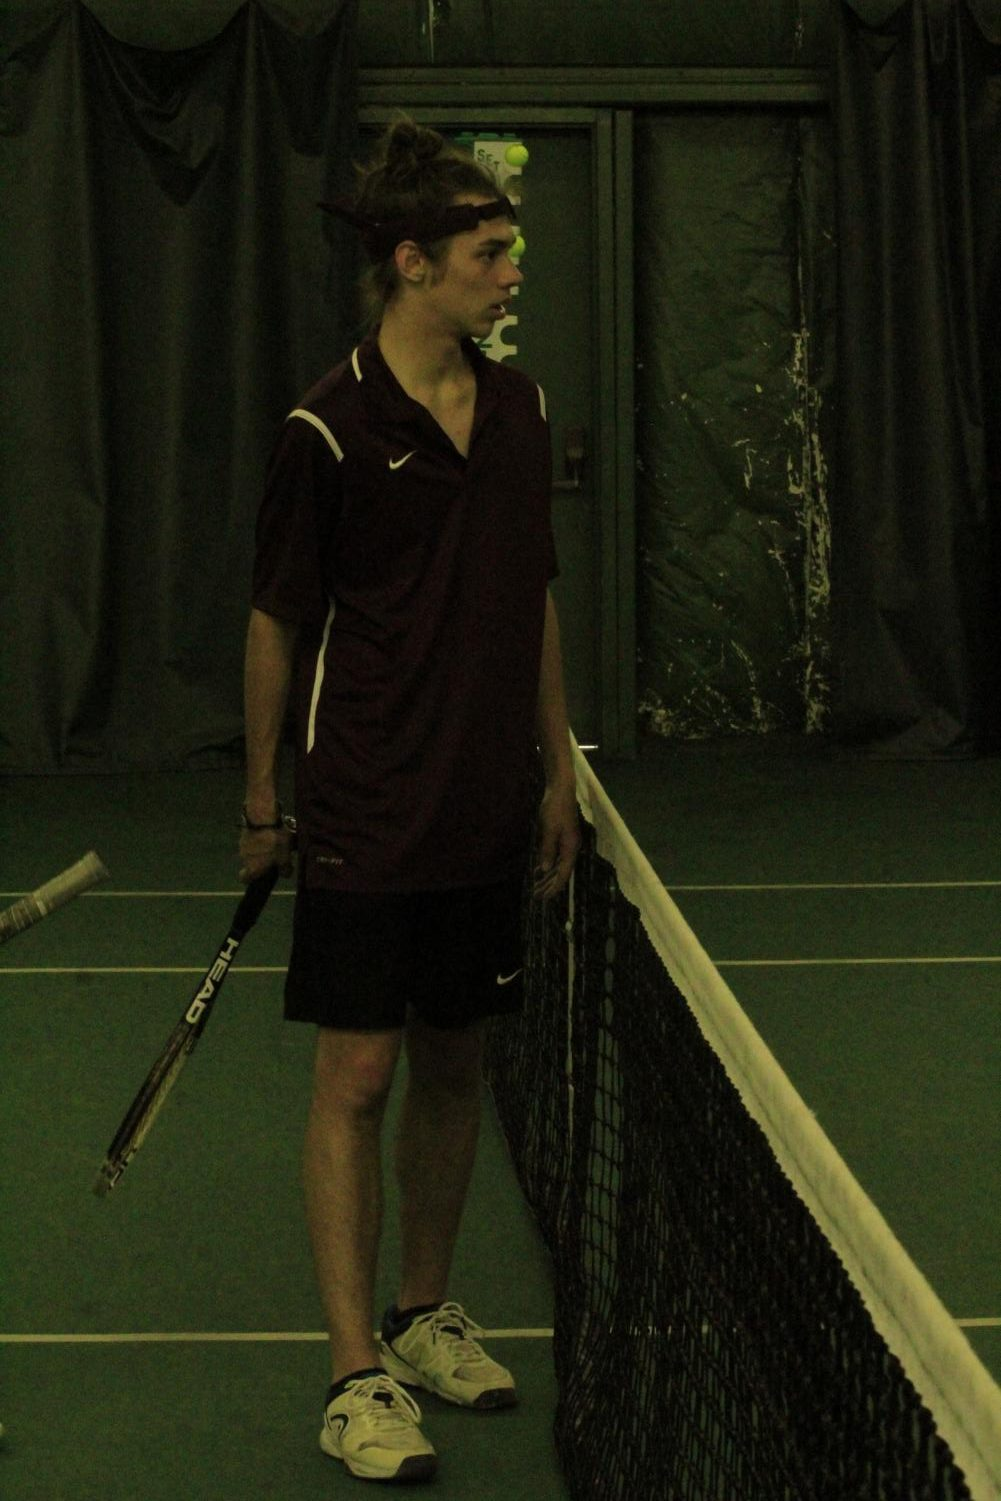 Senior+Micheal+Schimminger+talks+with+his+opponent+after+the+set+was+over.